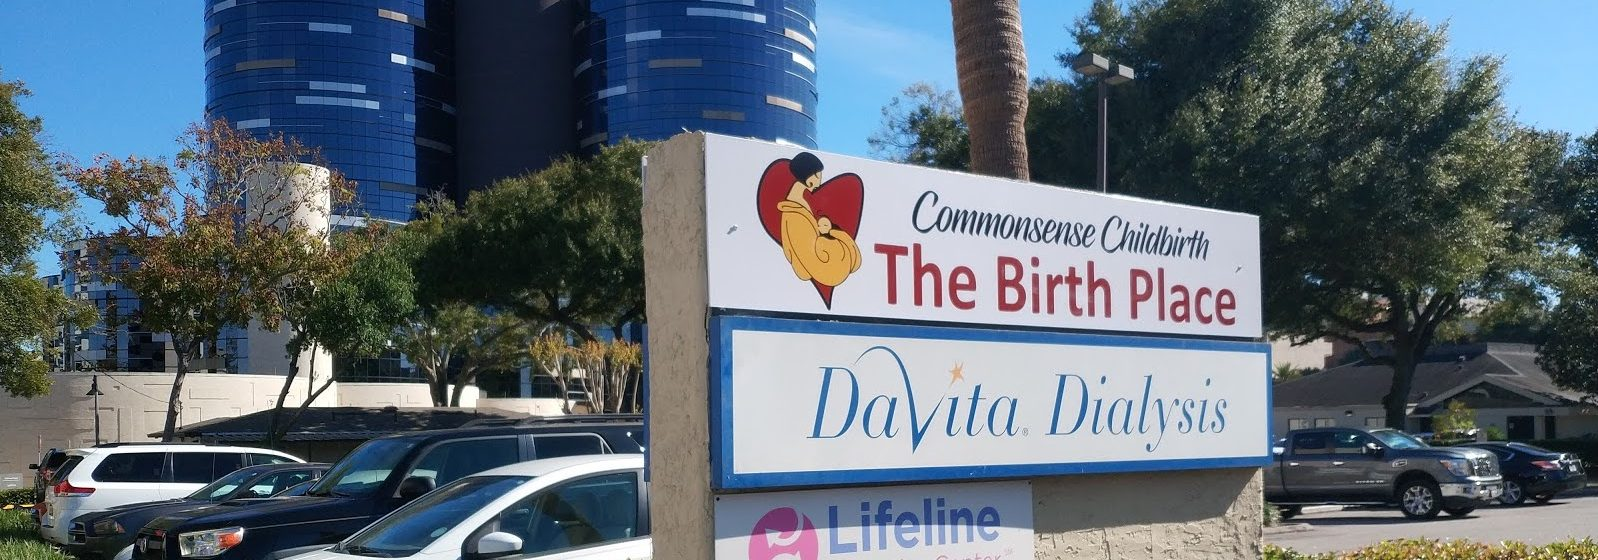 Picture of the The Birth Place sign outside building